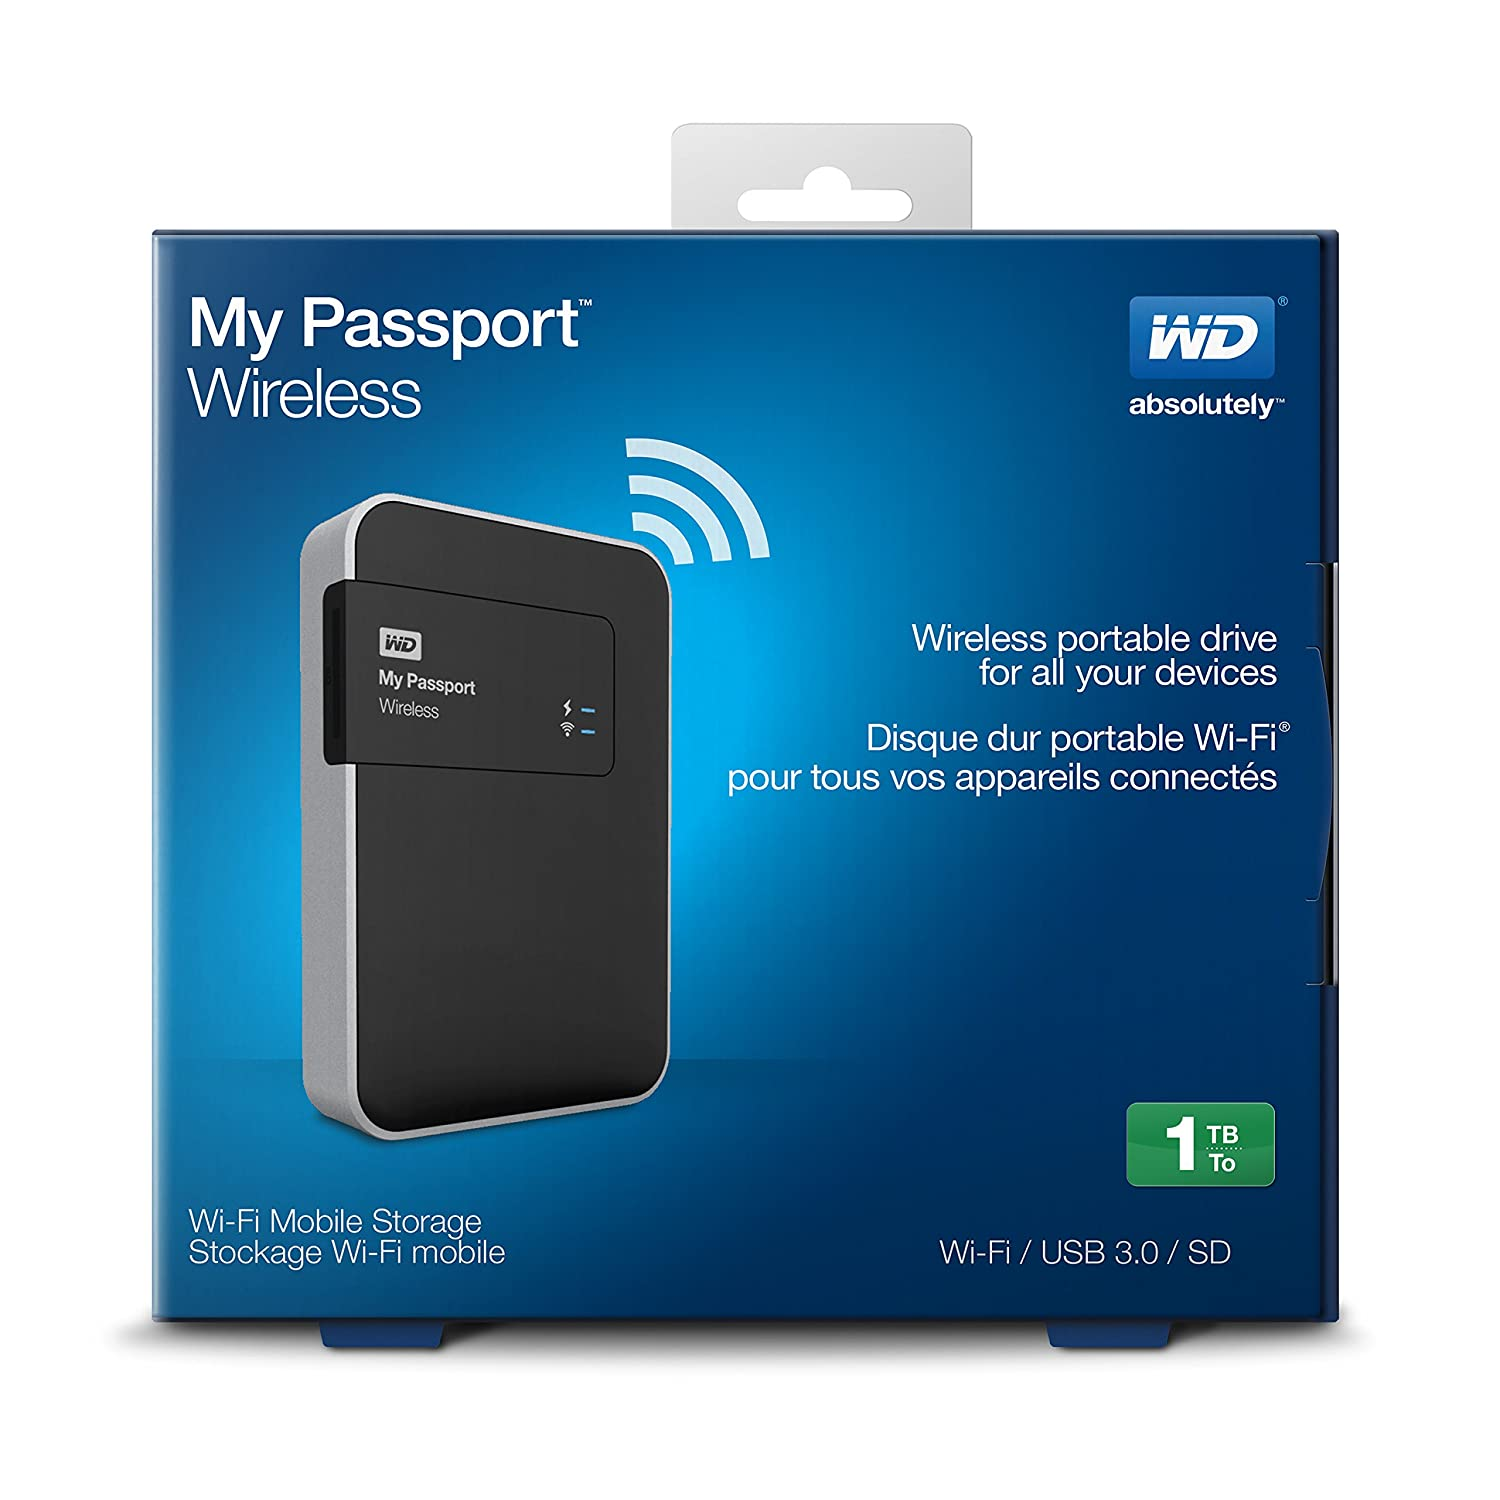 Western Digital WDBK8Z0010BBK-EESN WD My Passport: Amazon.co.uk ...